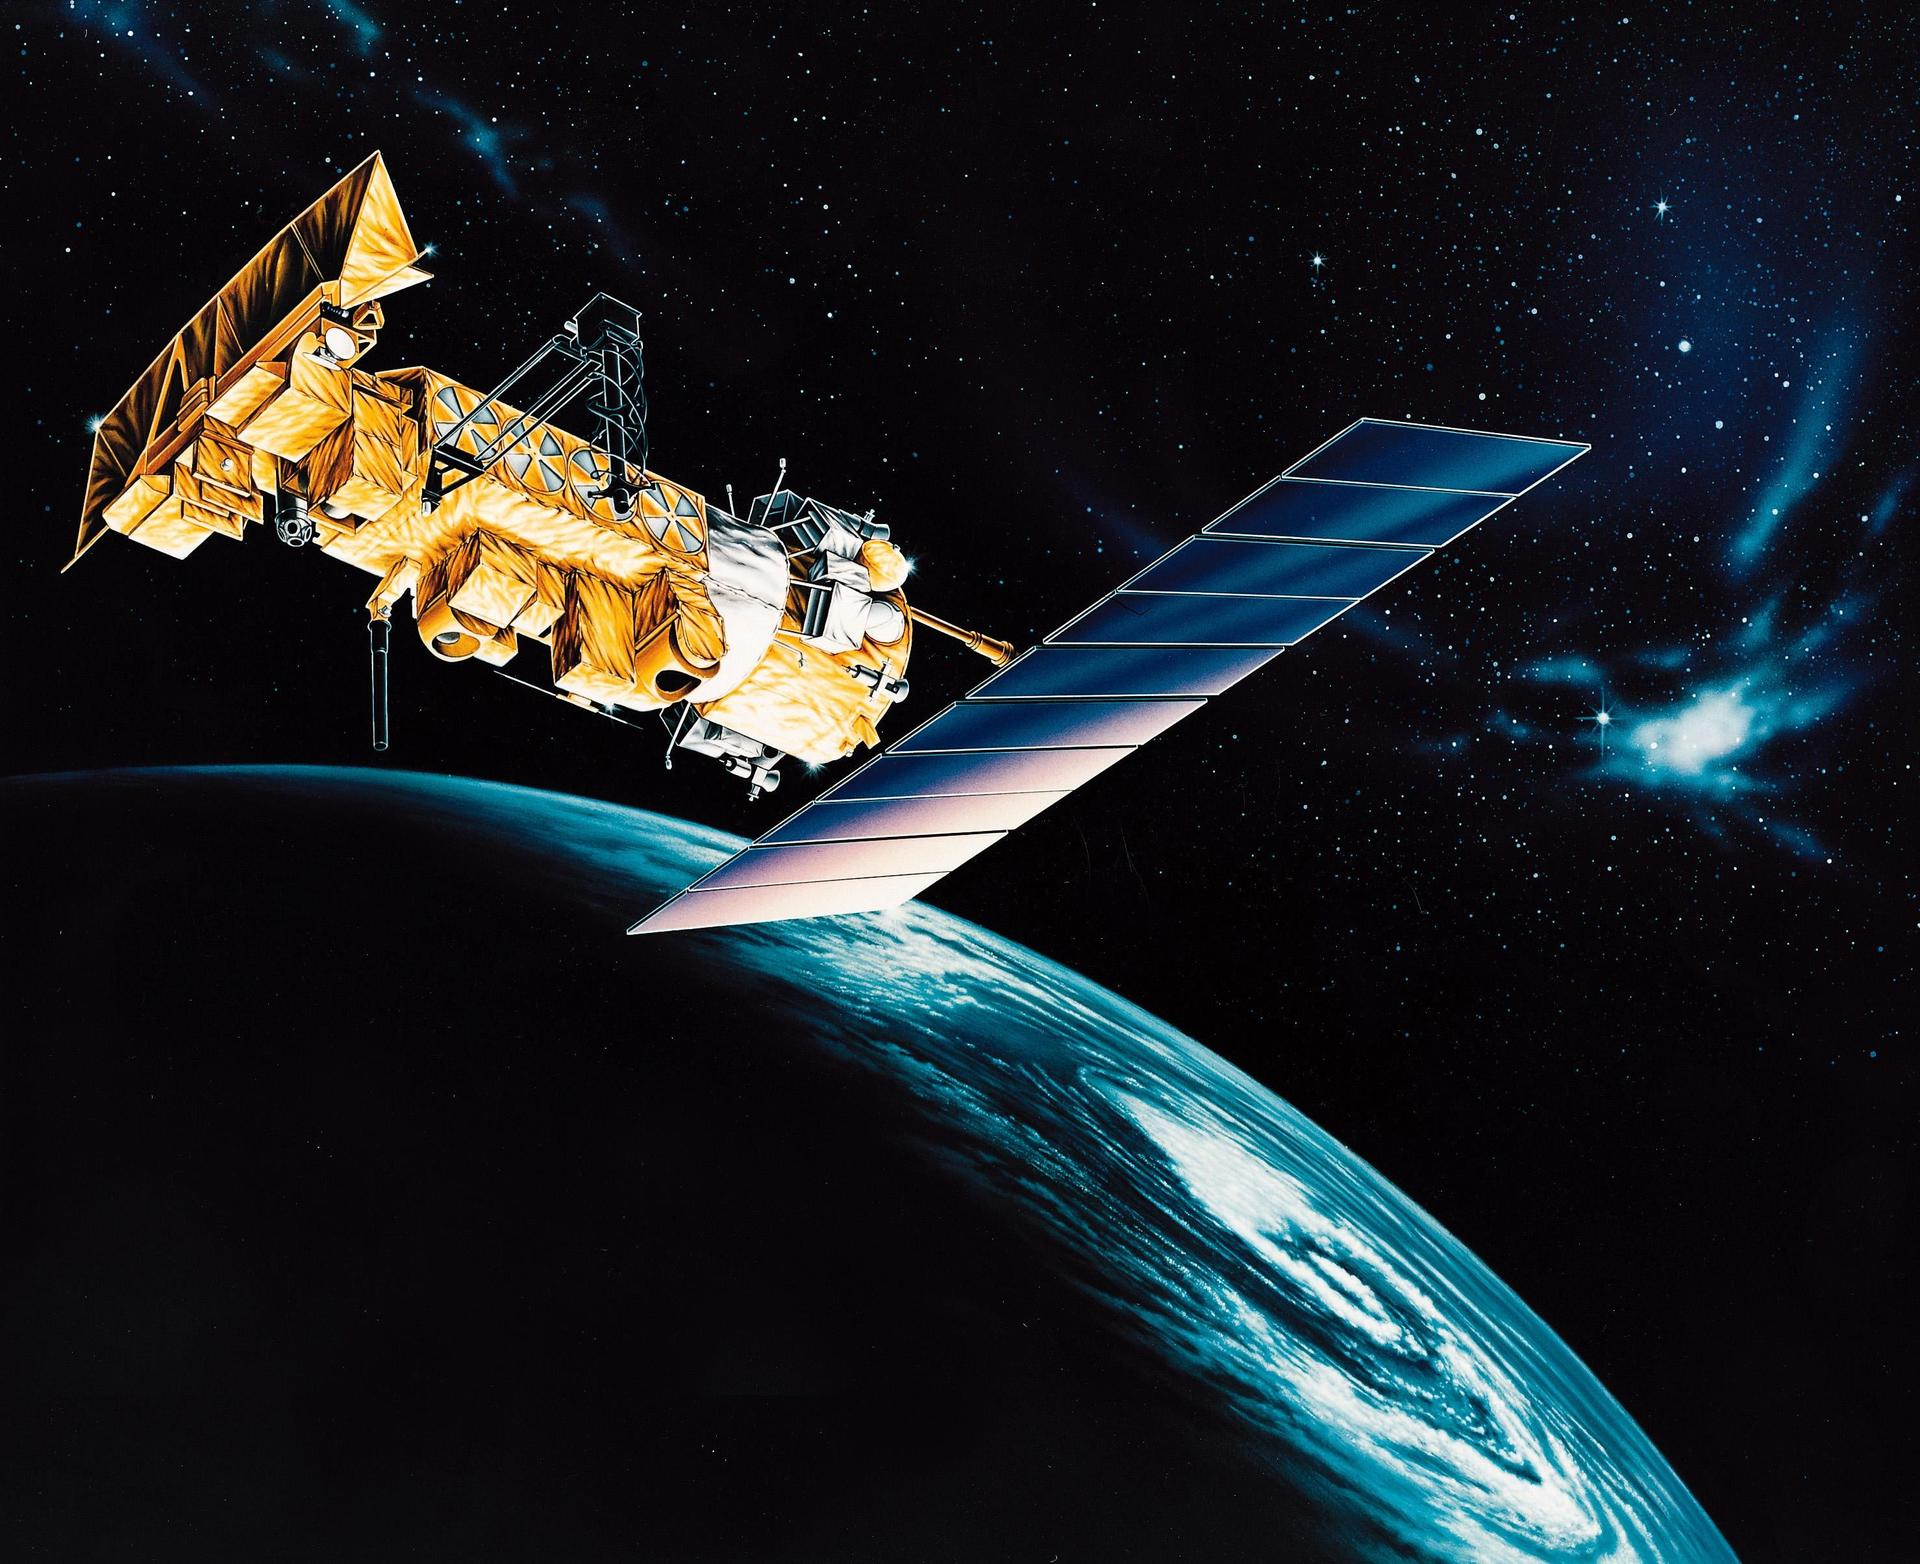 An artist's rendering of the NOAA-M spacecraft, a polar-orbiting Earth environmental observation satellite intended to provide global data to NOAA's short- and long-range weather forecasting systems. (NASA)